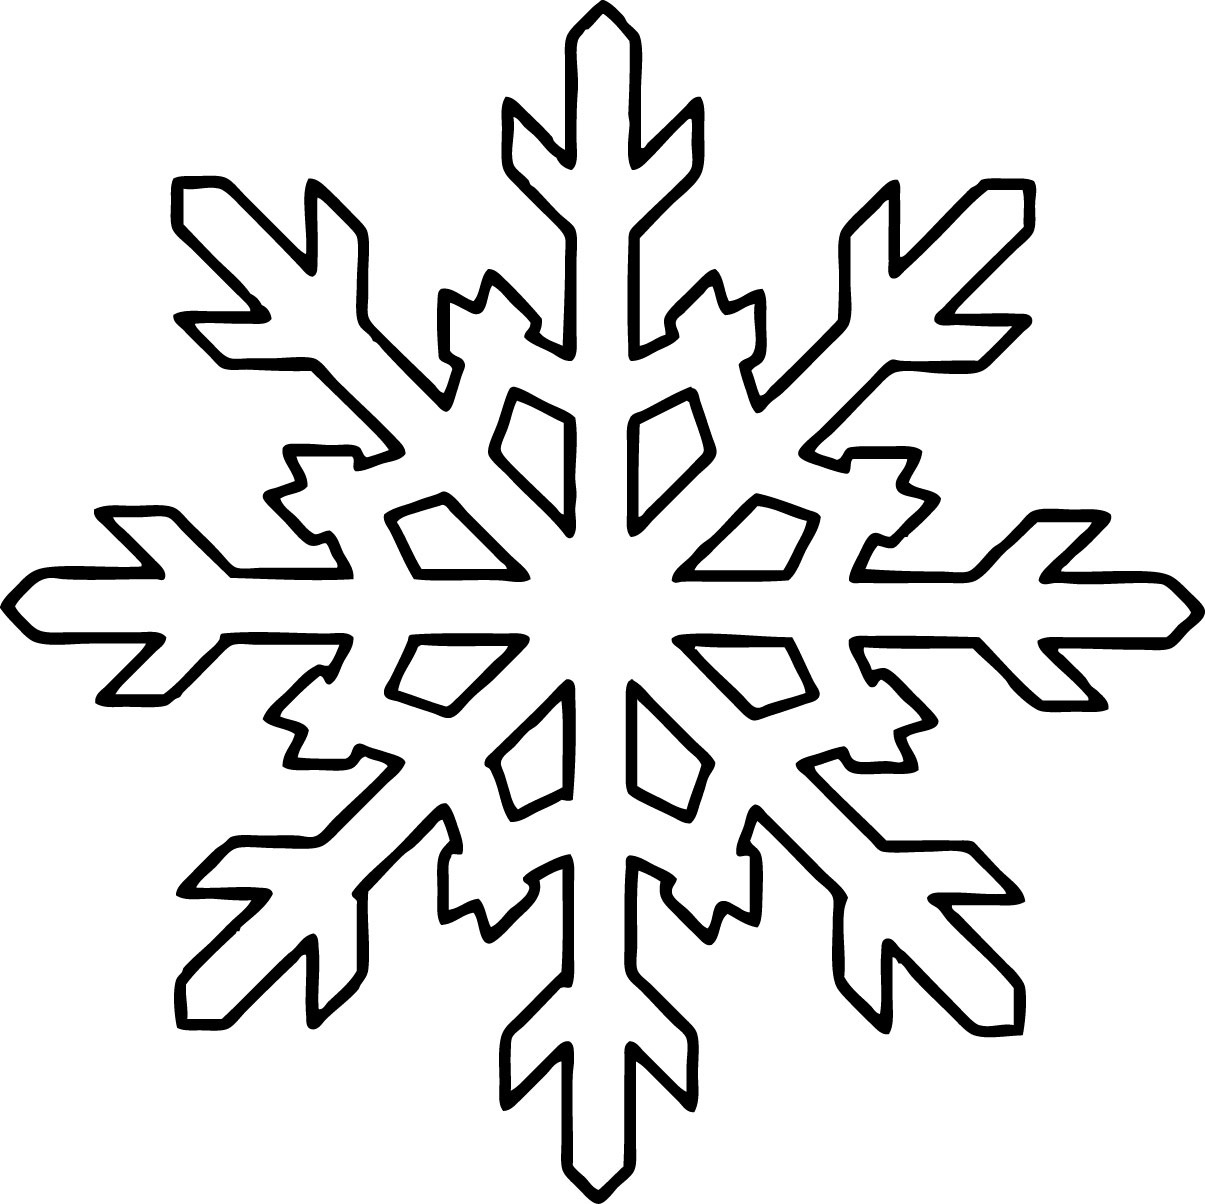 Free Printable Snowflake Coloring Pages For Kids - Free Printable Snowflakes